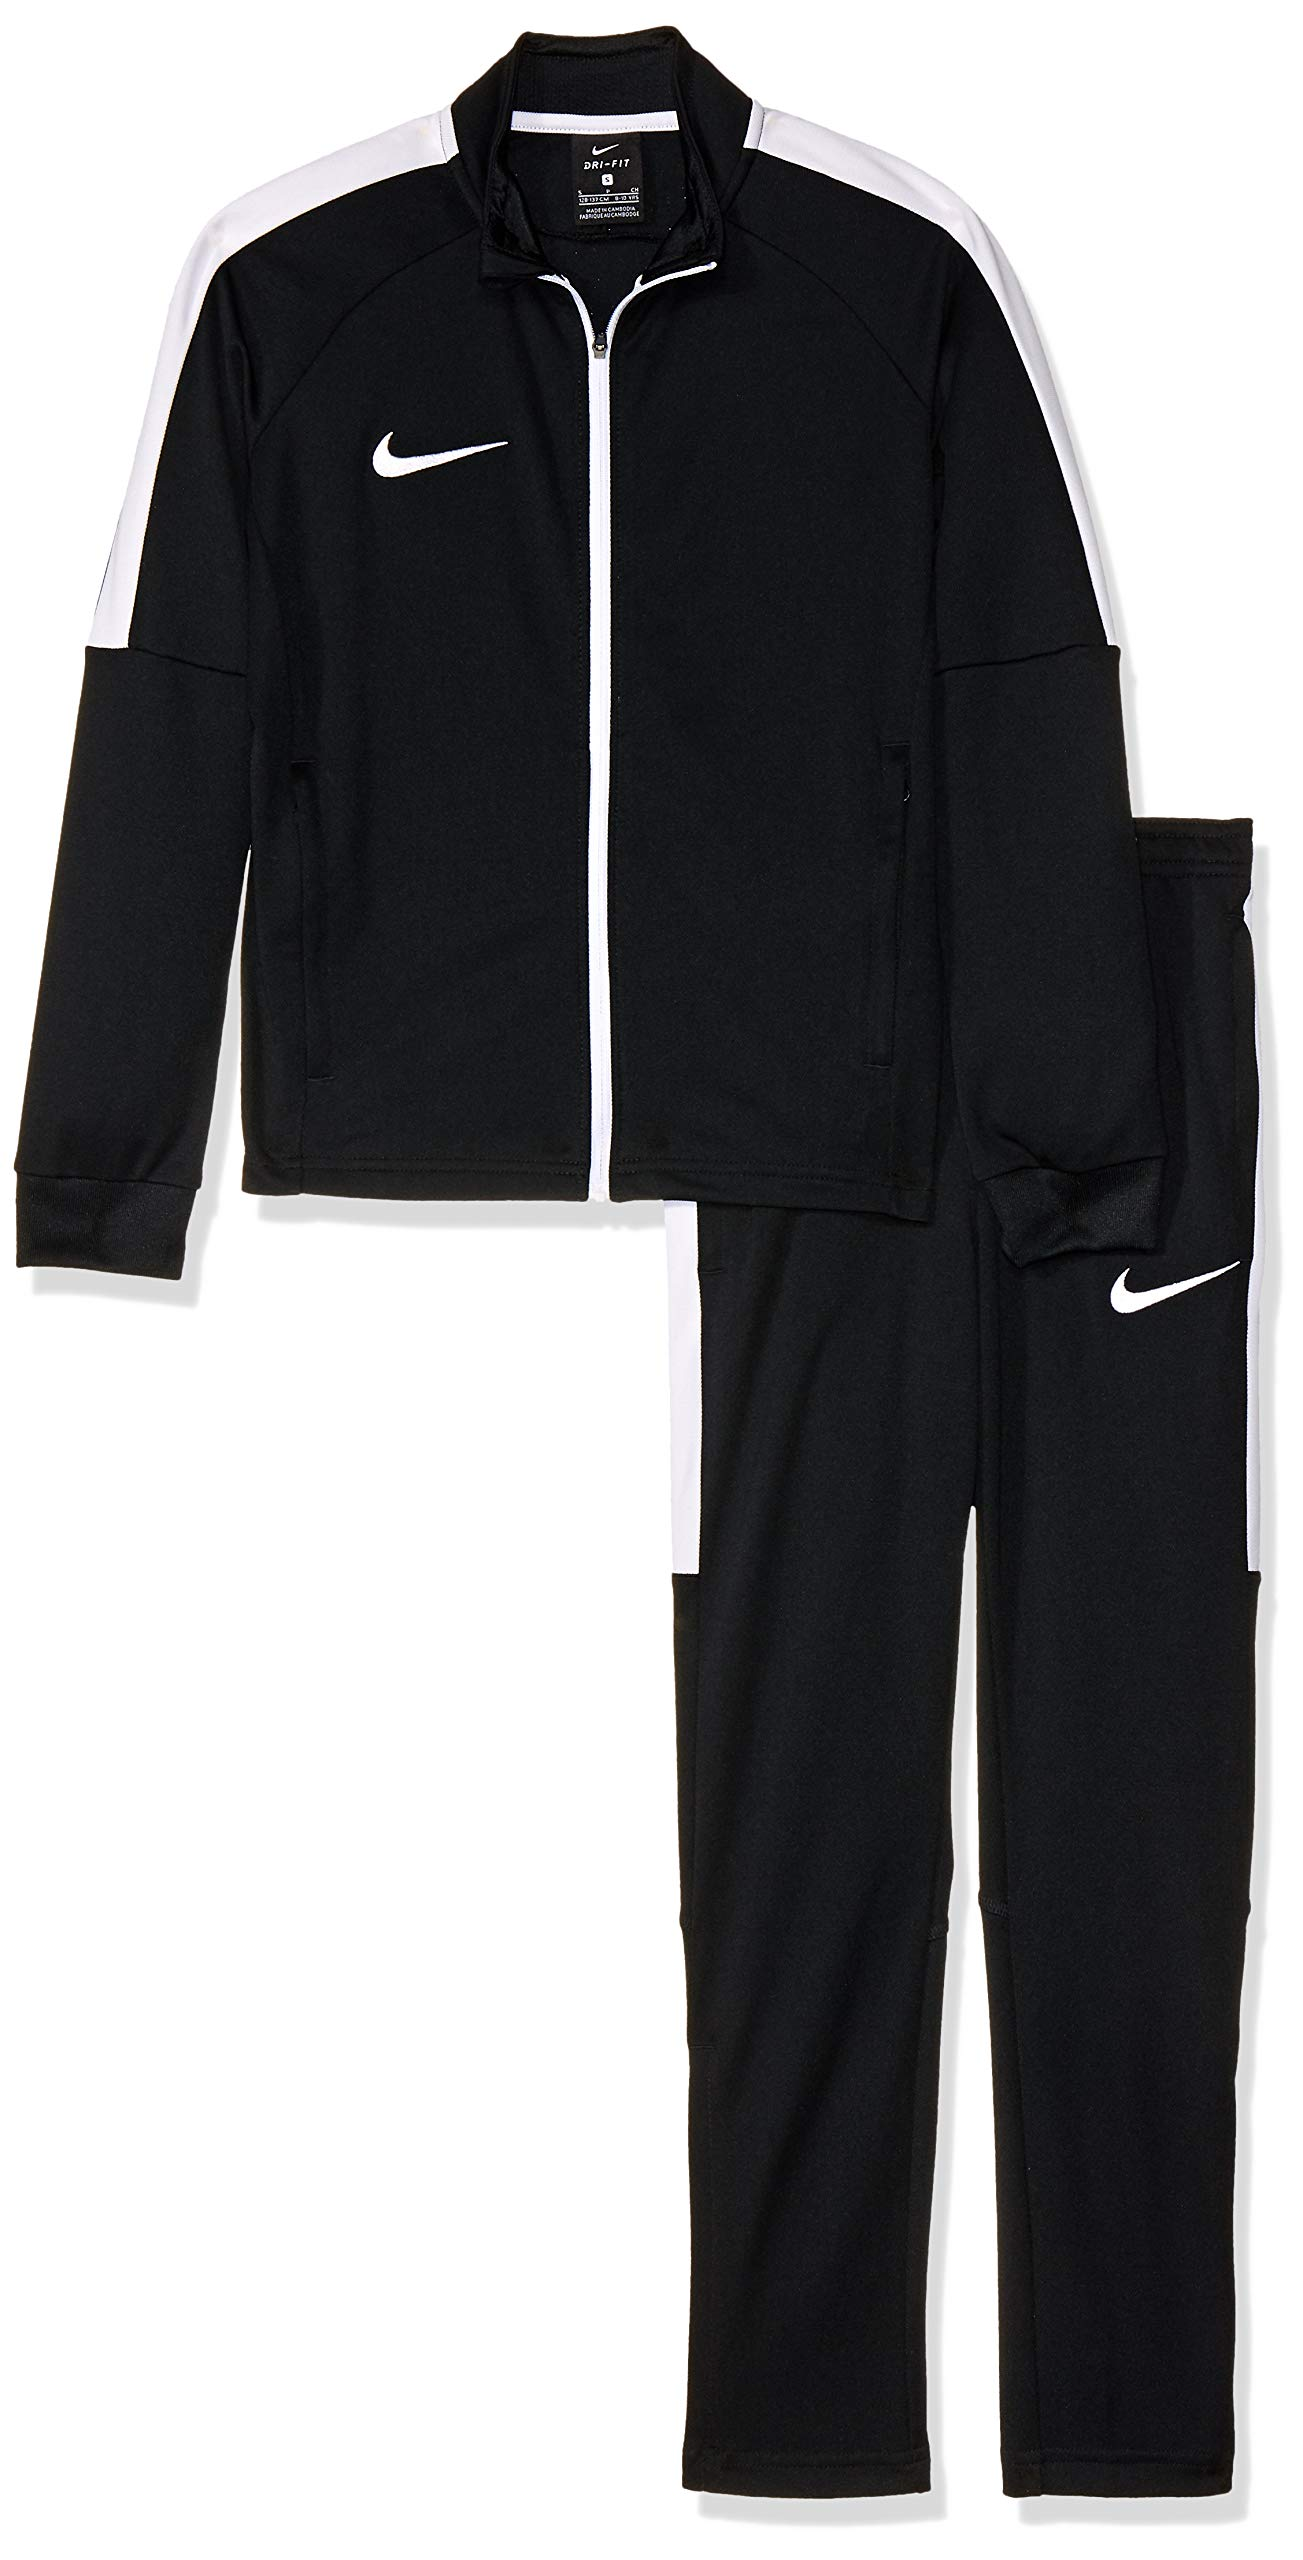 NIKE Dry Academy Older Kids' Football Track Suit (L, Black/White) by Nike (Image #1)